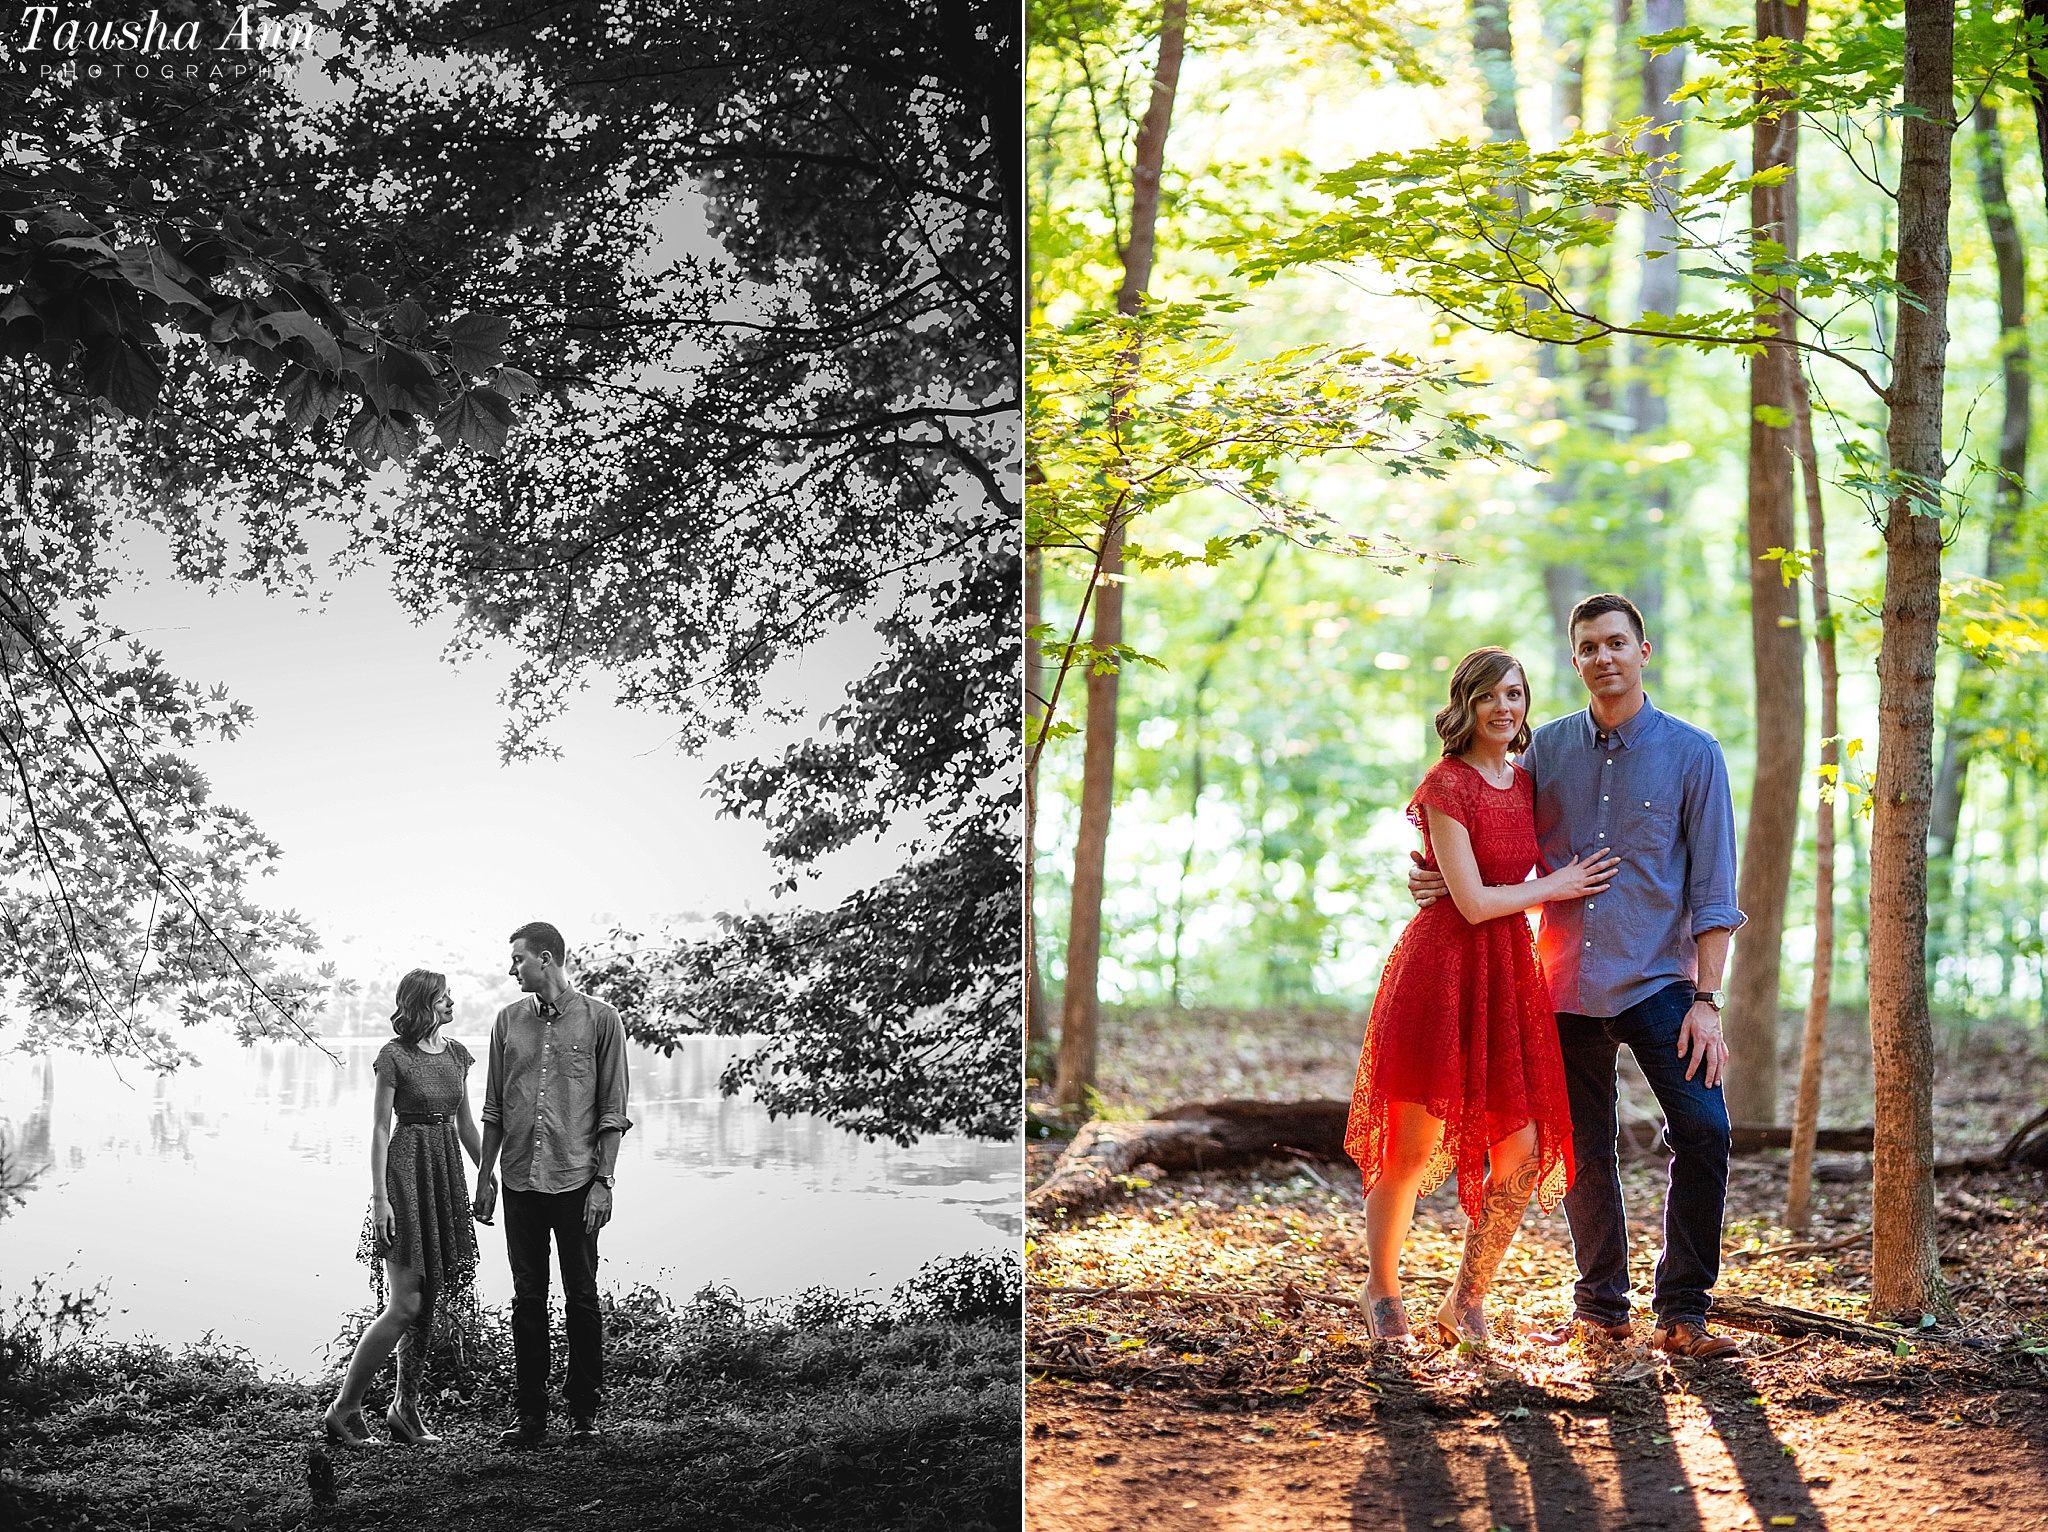 Nashville_engagement_Wedding_Tausha_Ann_Photography_Franklin_TN_Harlinsdale_Farm_Agricultural_Center_Nashville_0105